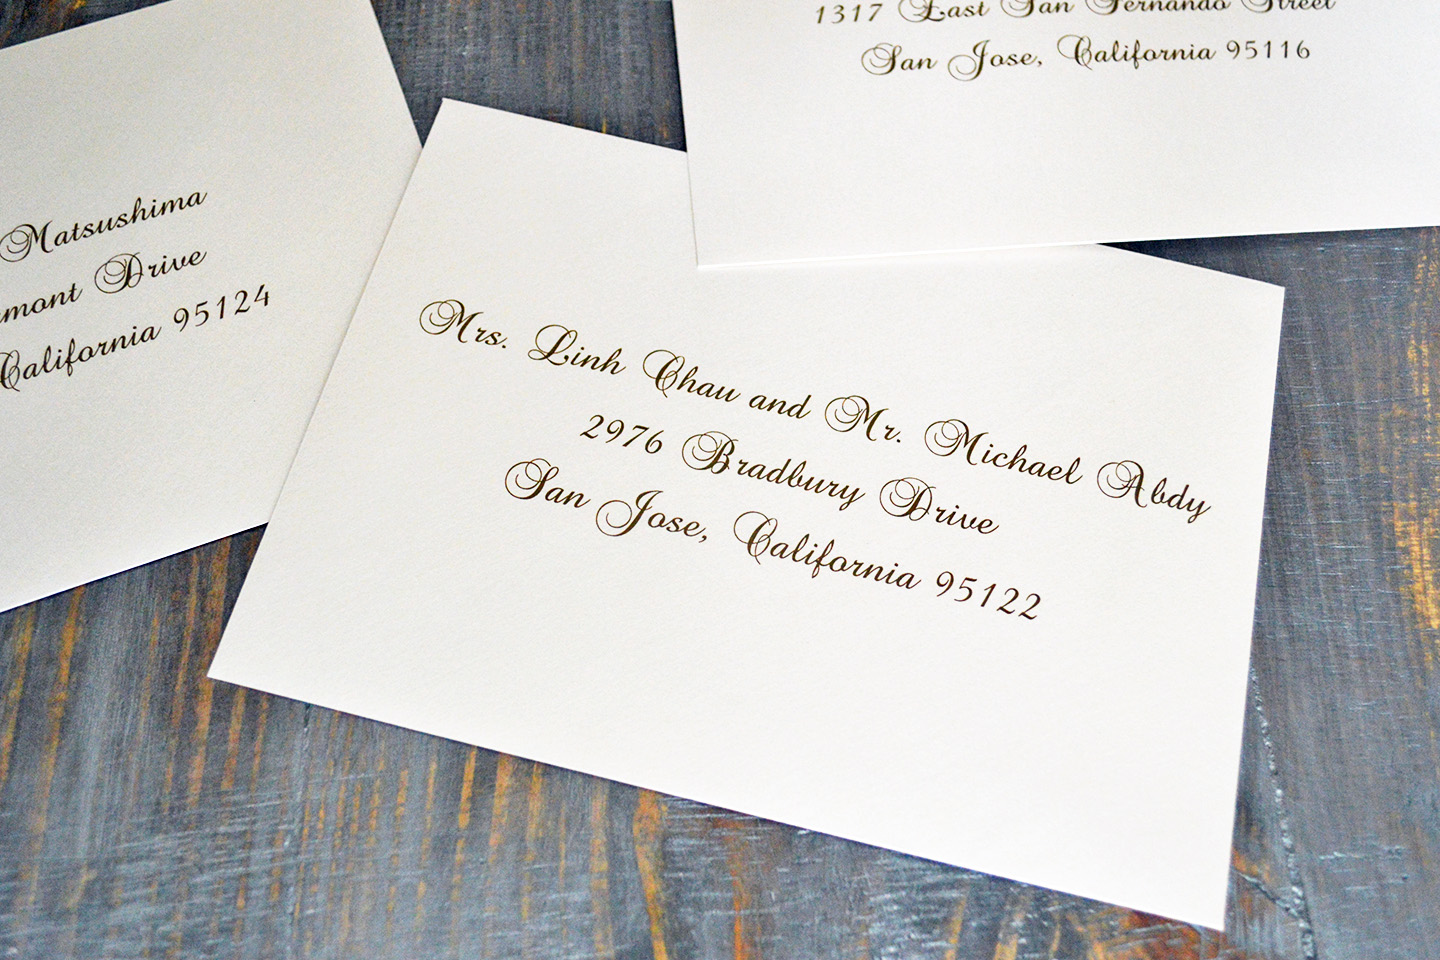 How To Write On Envelope For Wedding Invitations: How To Address Wedding Invitation Envelopes